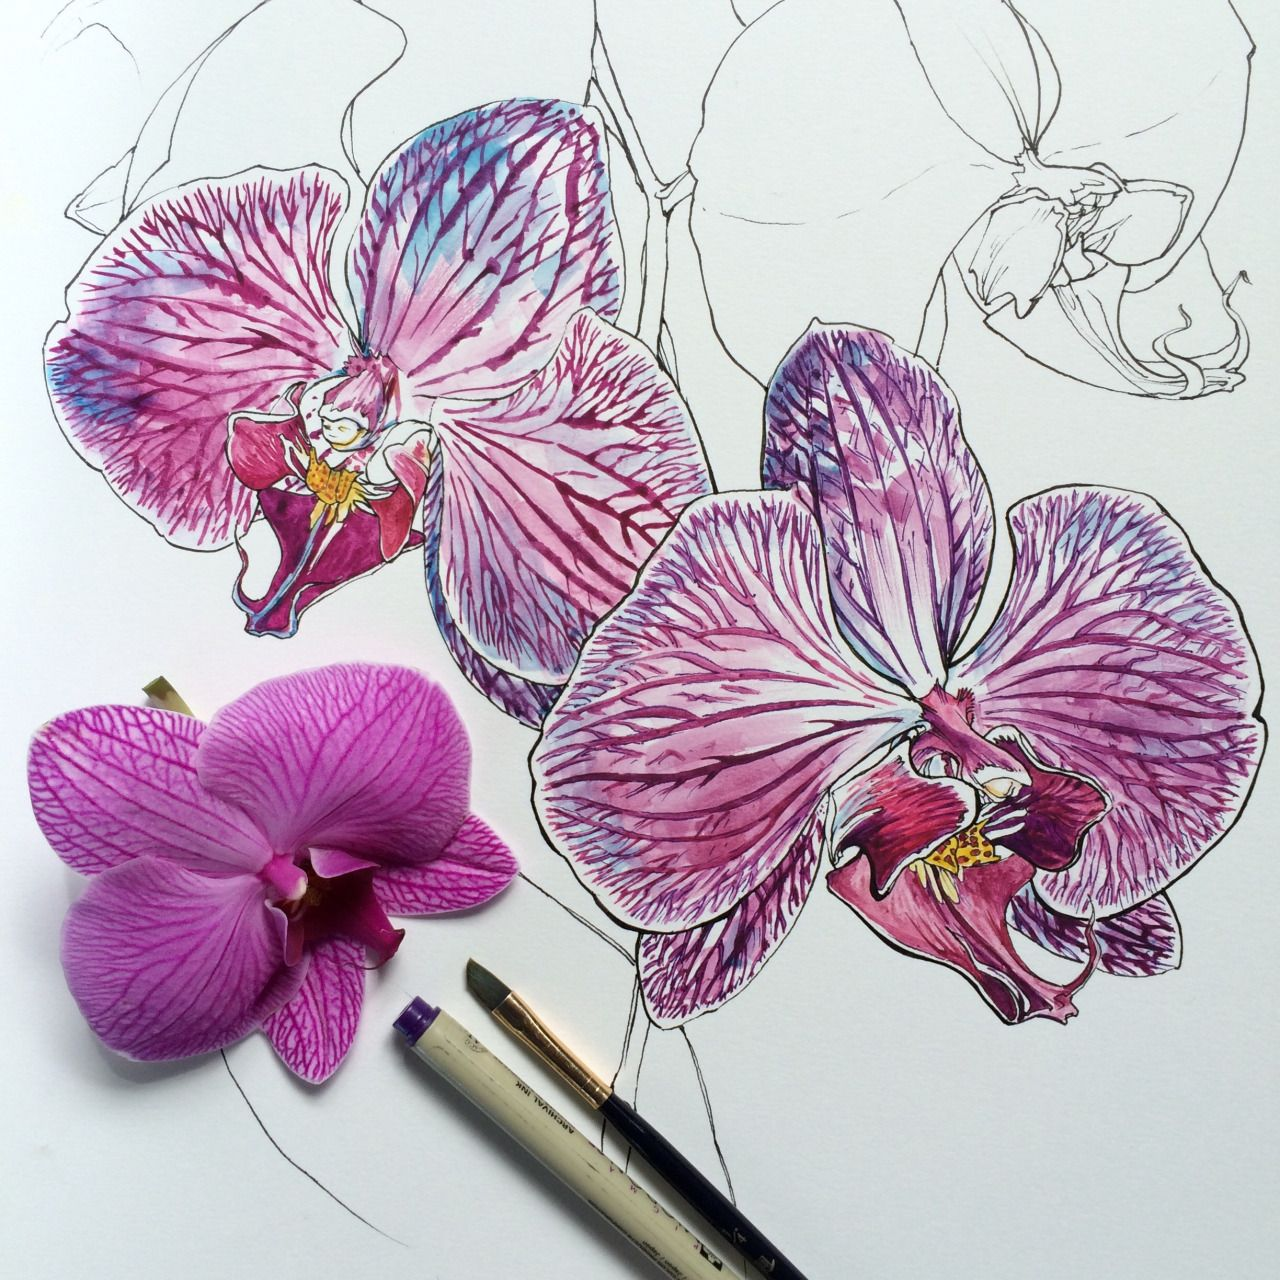 noelbadgespugh drawing pinterest noel badges and orchid. Black Bedroom Furniture Sets. Home Design Ideas